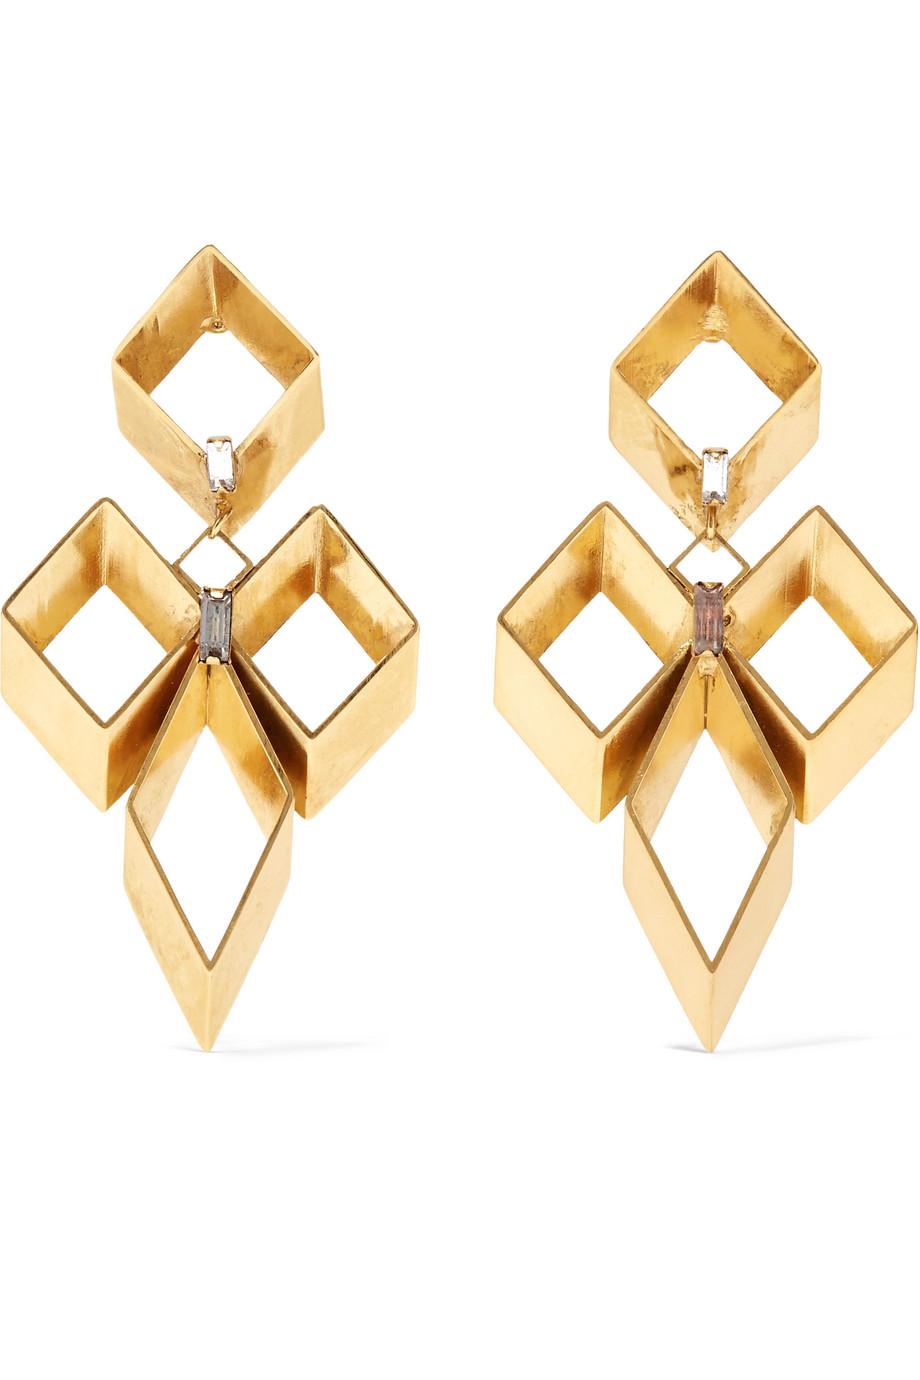 Erickson Beamon Geometry One Gold-Plated Swarovski Crystal Earrings, Women's